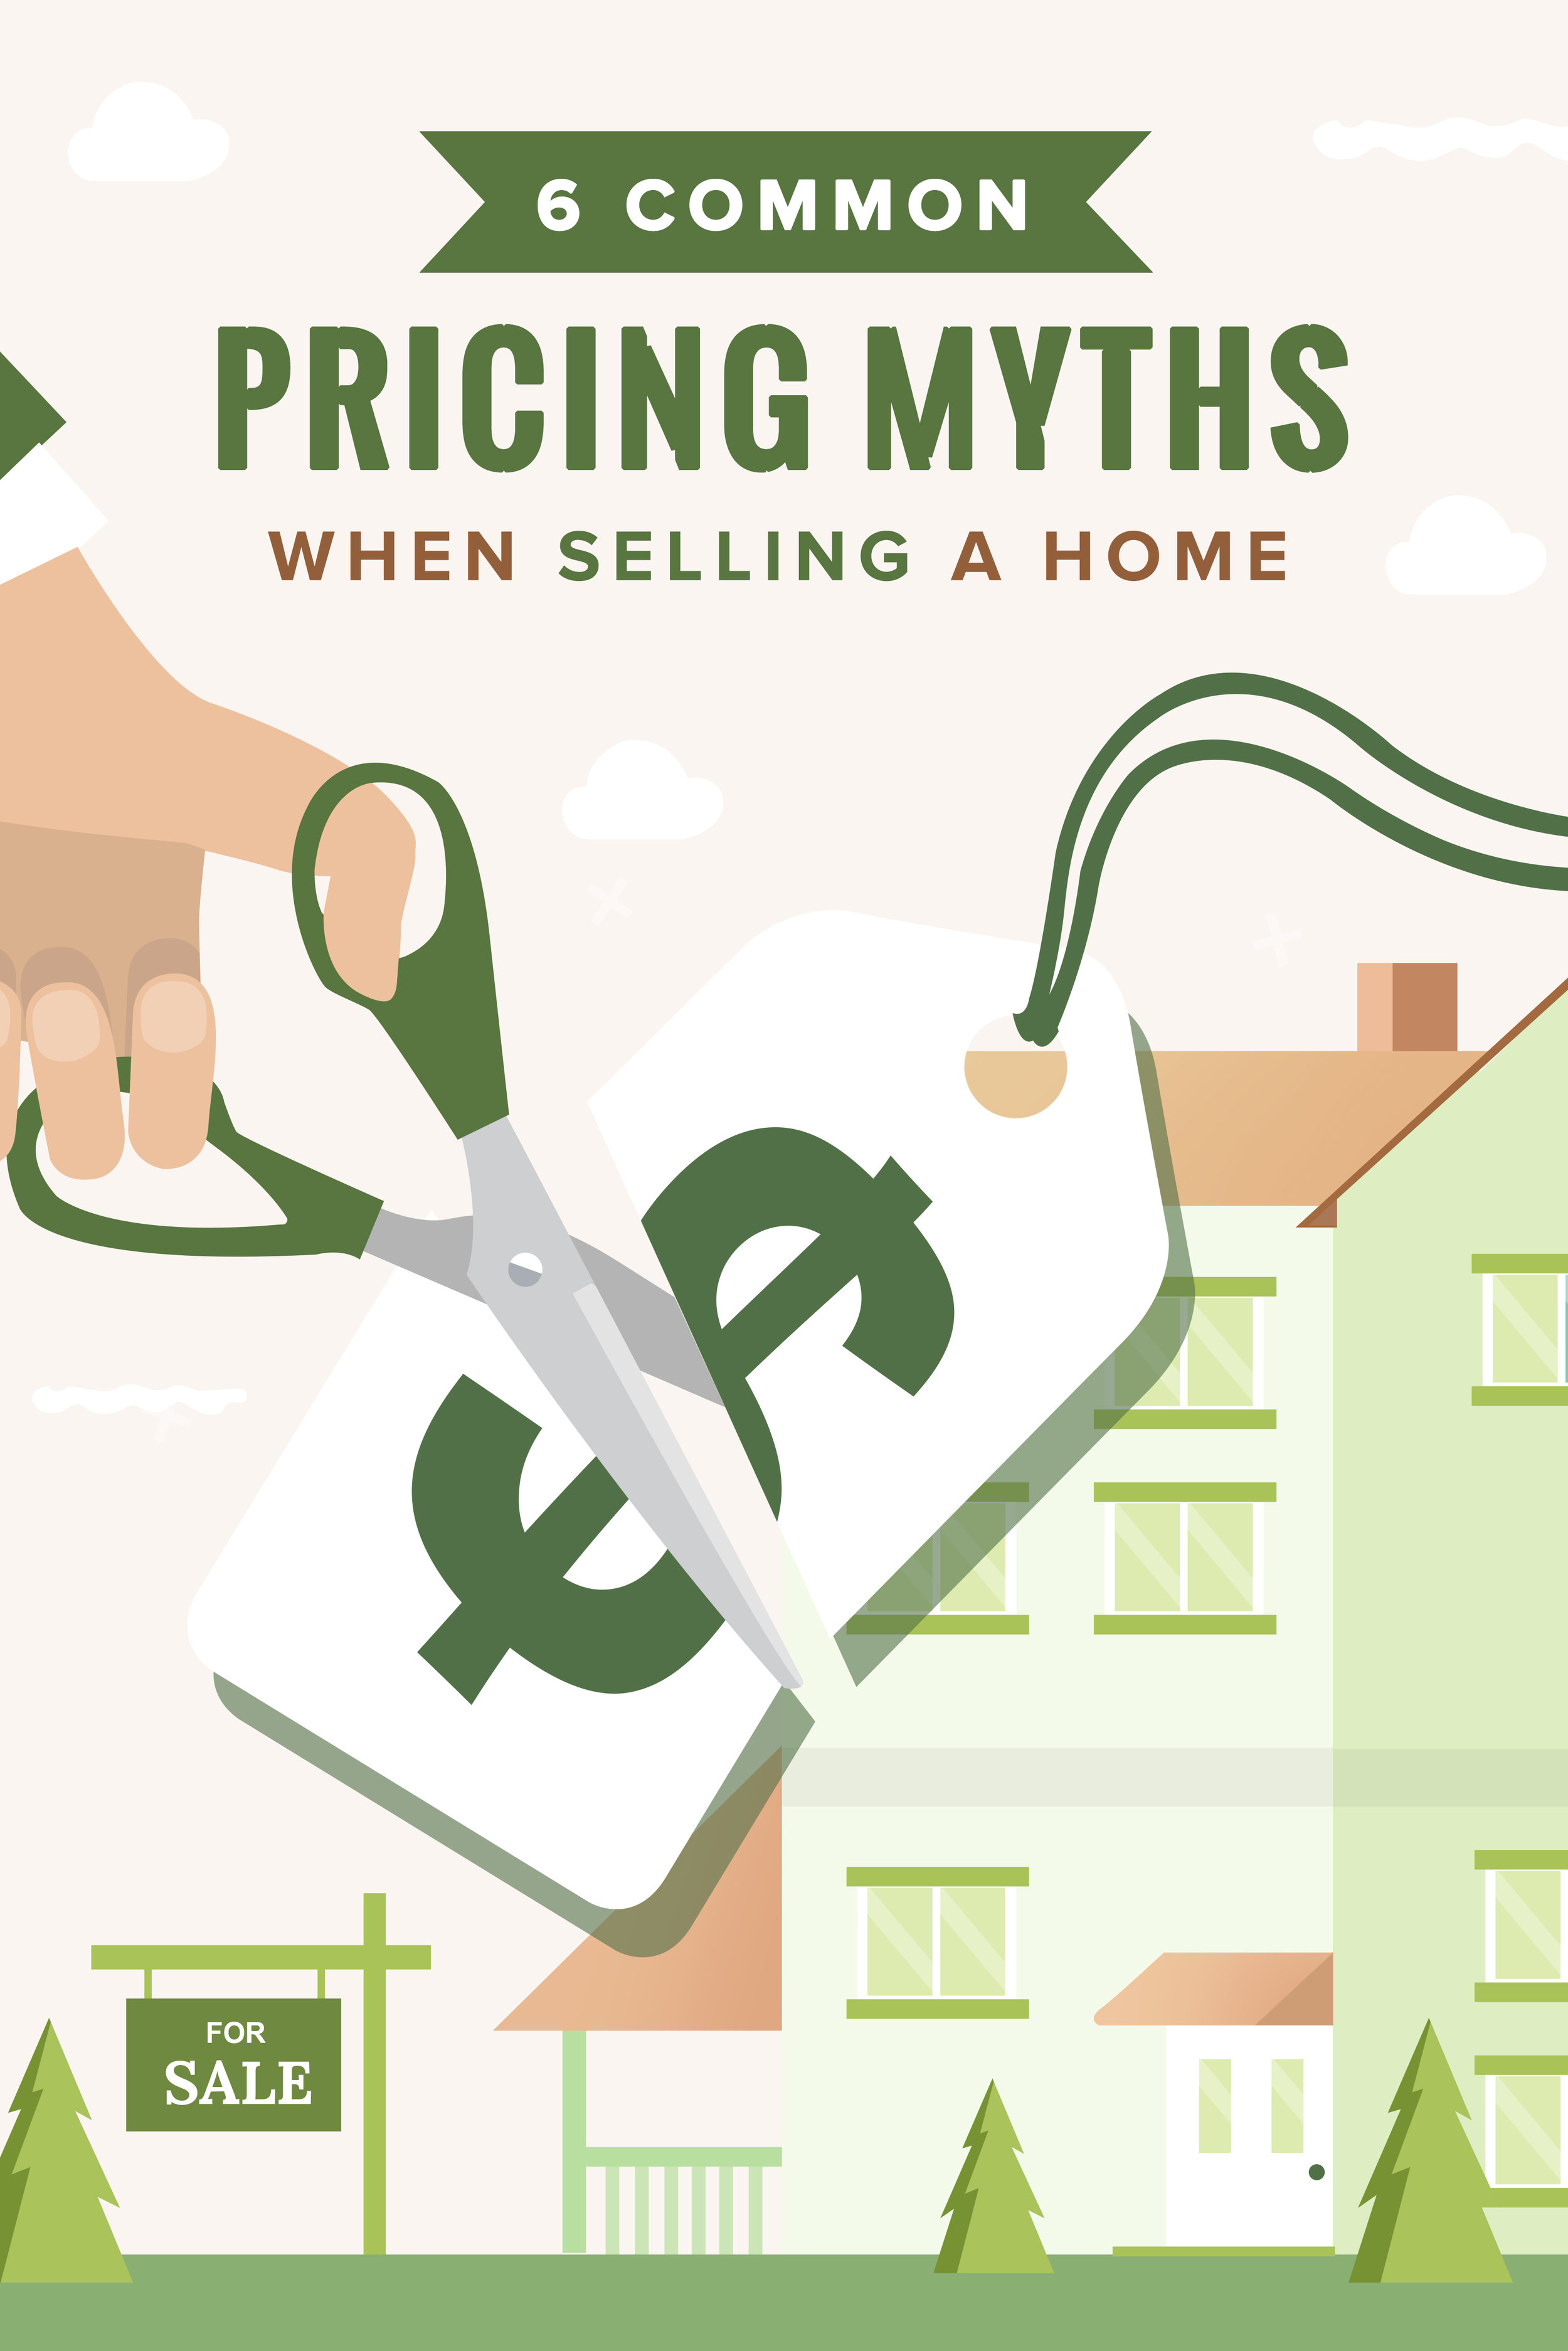 6 Common Pricing Myths When Selling A Home2.jpg